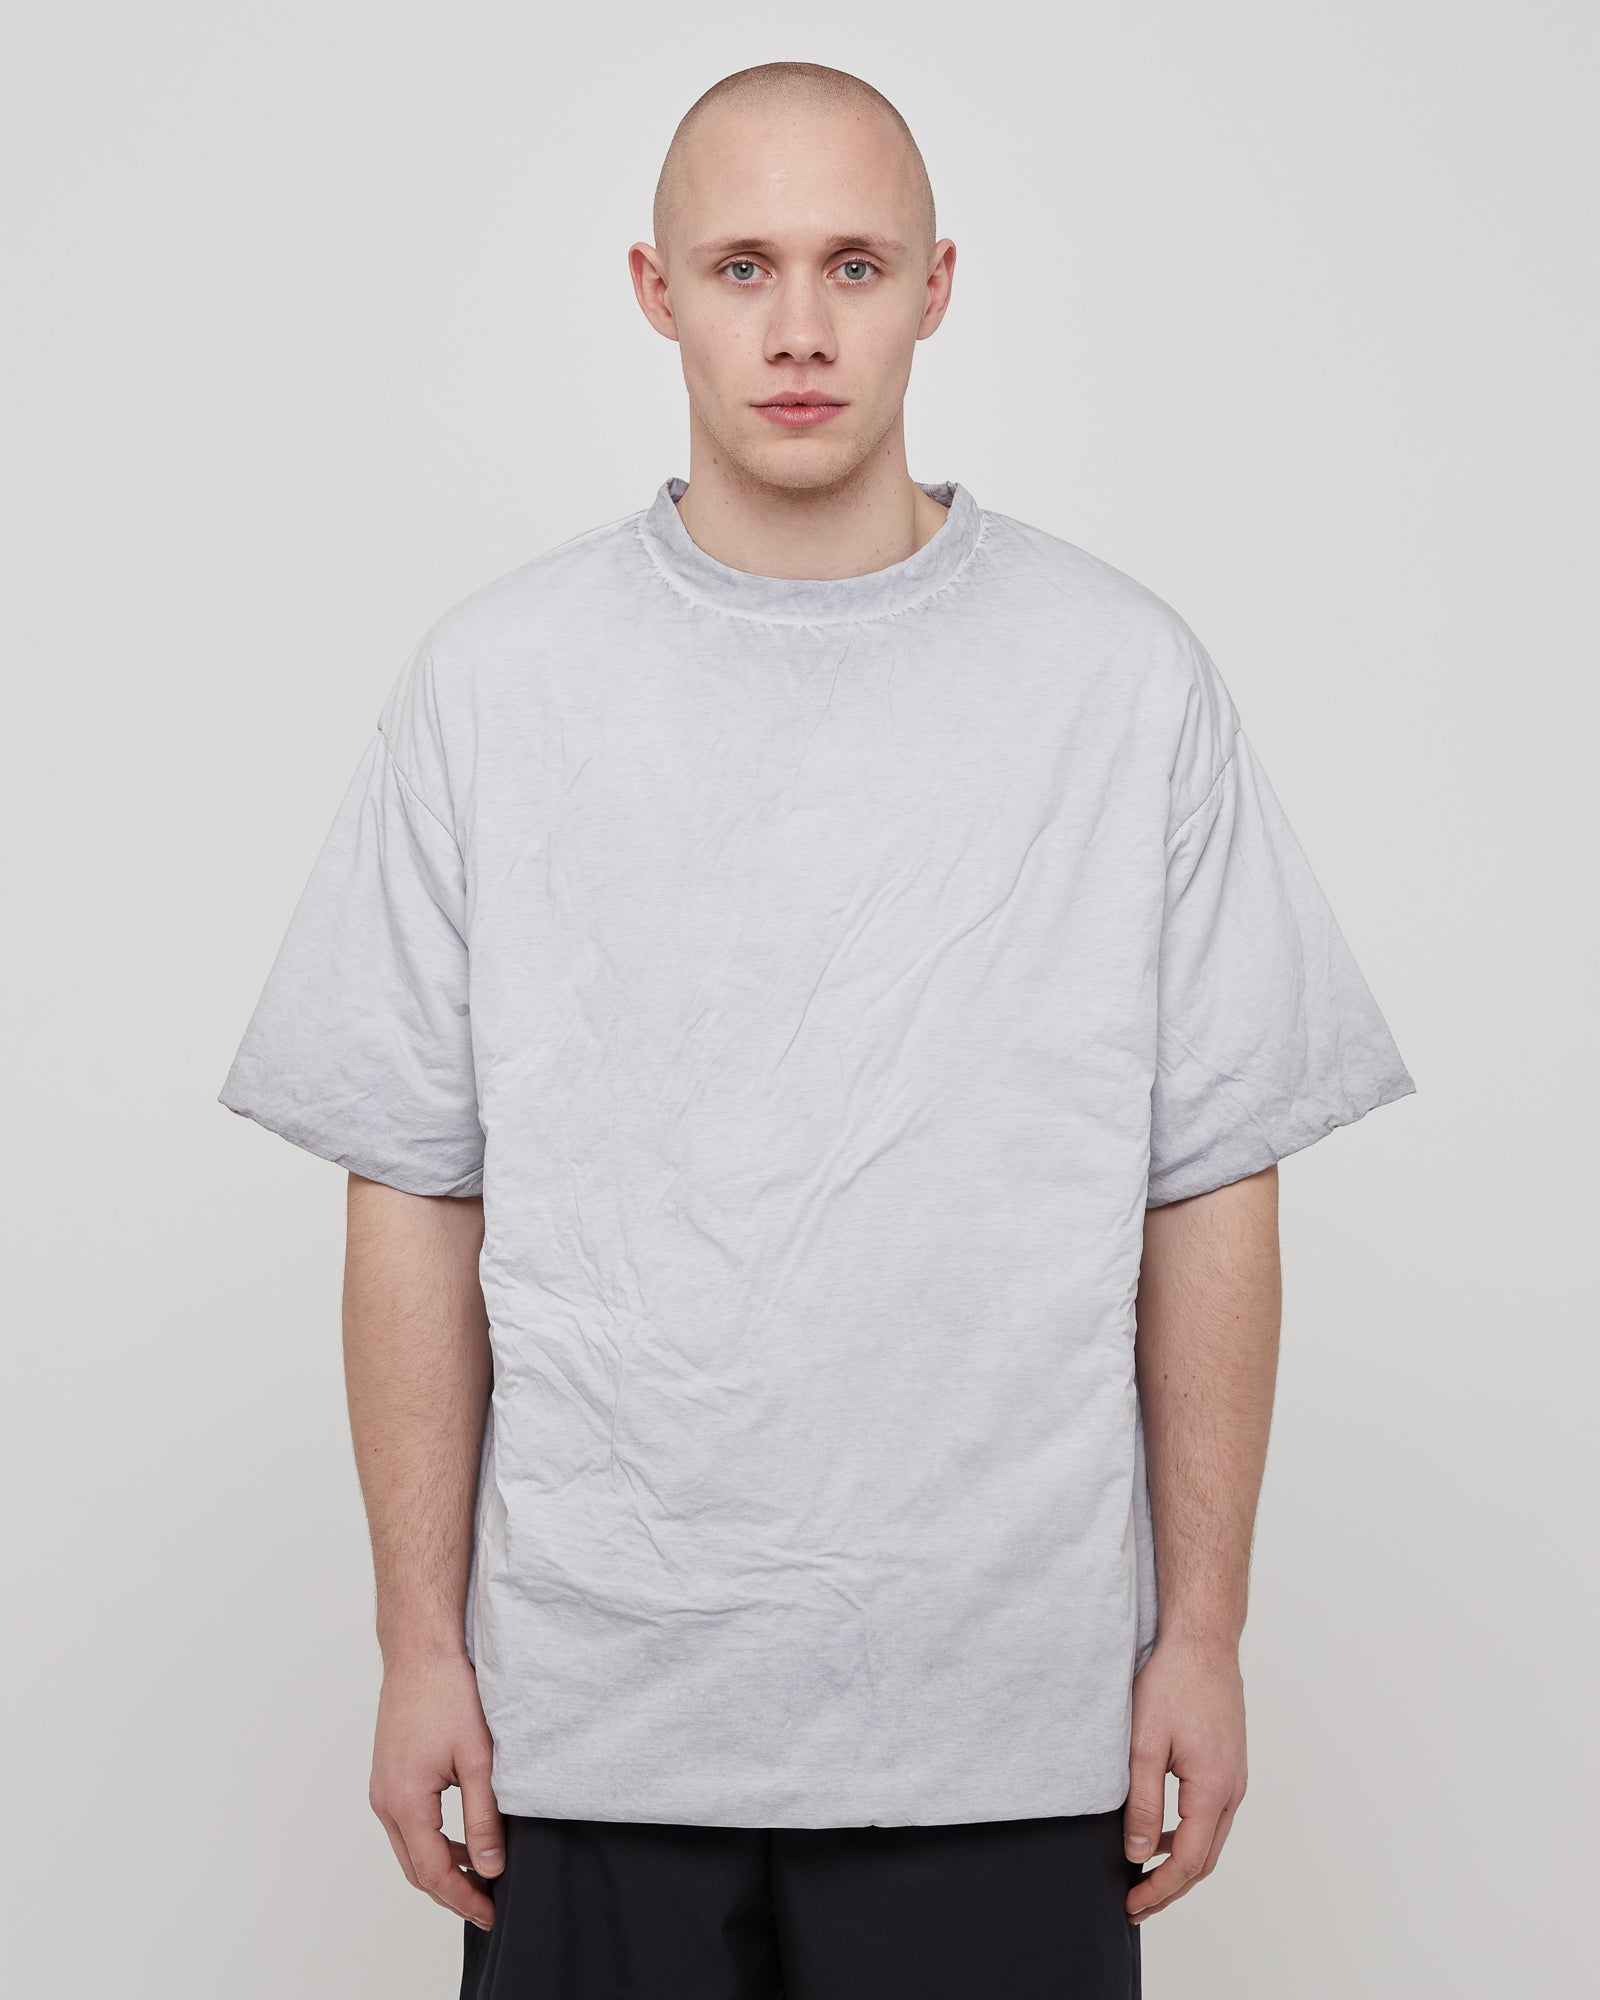 Resin Padded T-Shirt in Mist